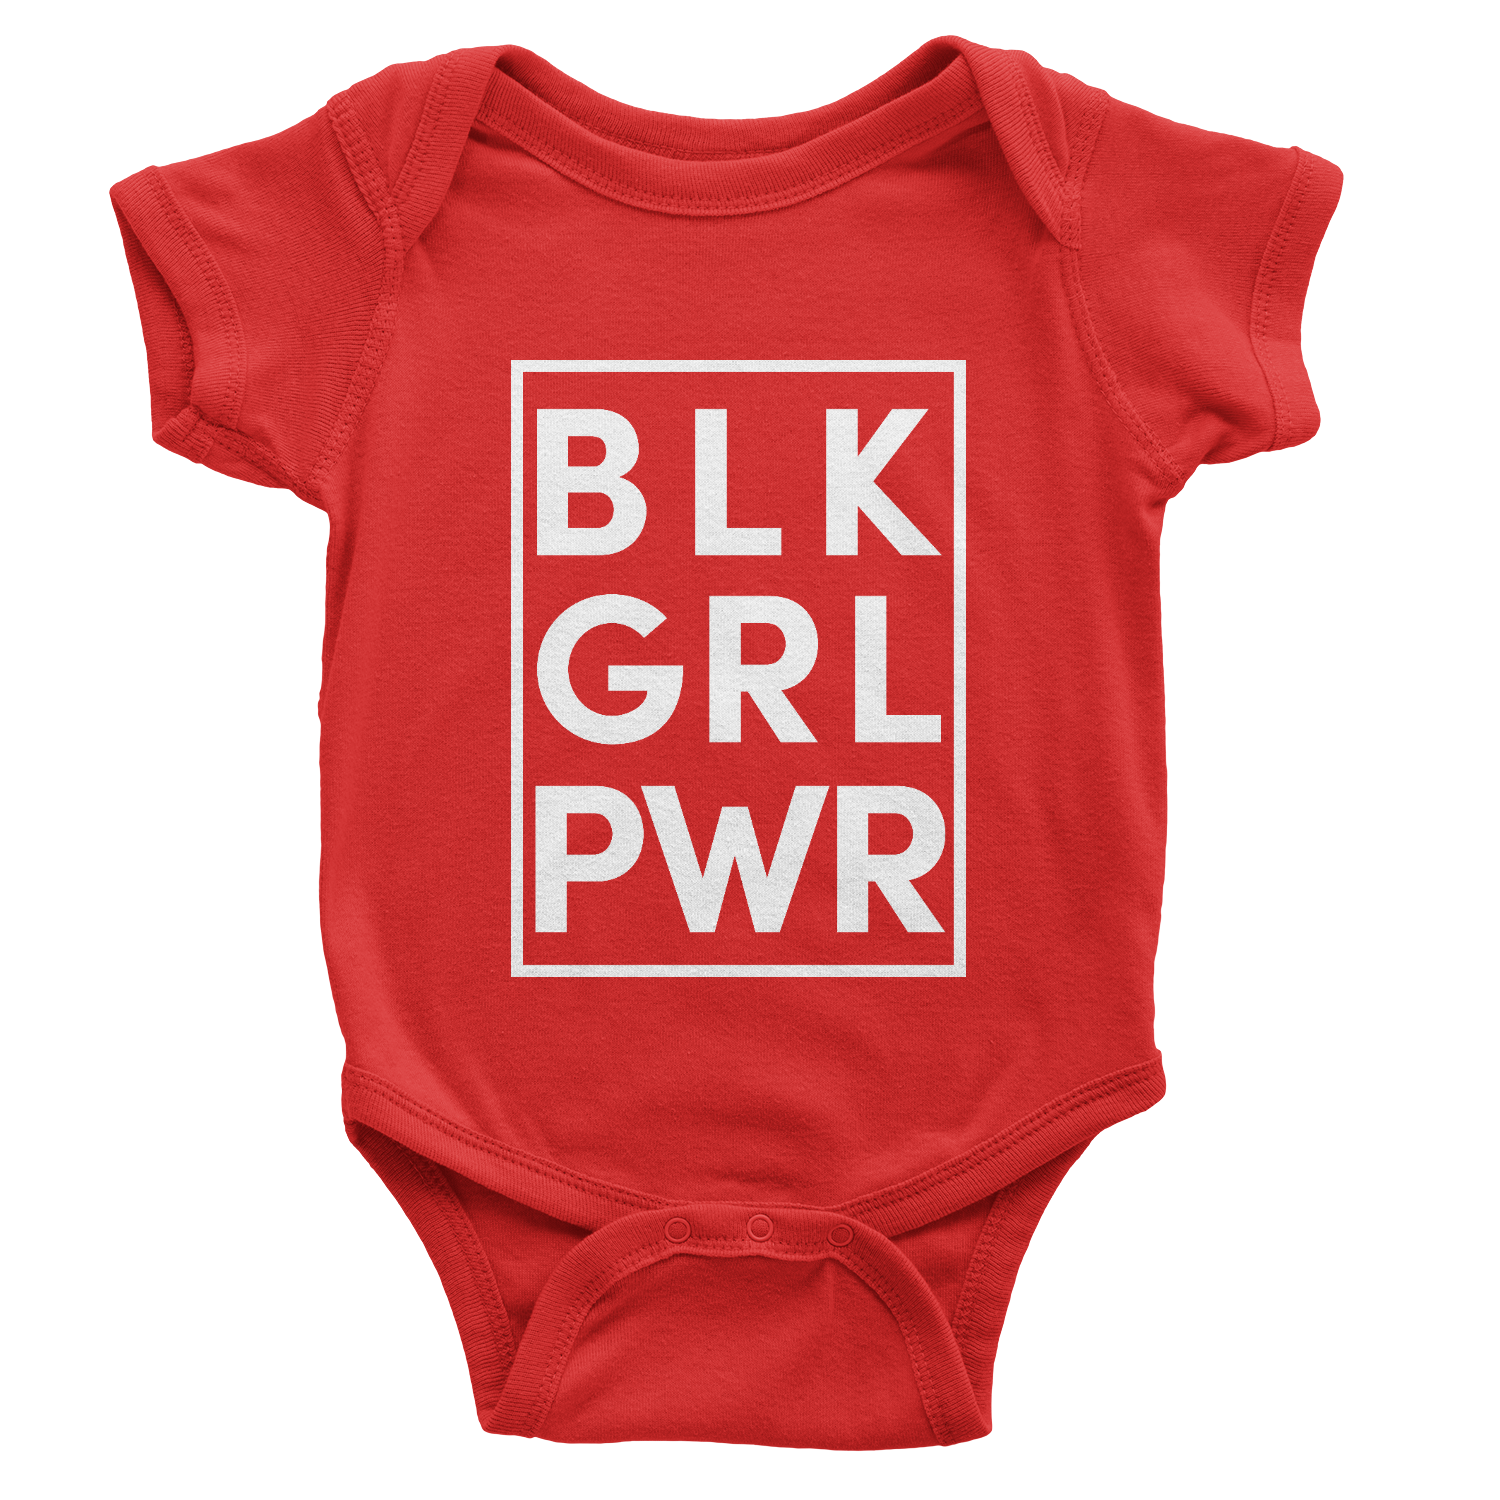 Black Girl Power Onesies - Stoop & Stank Tees